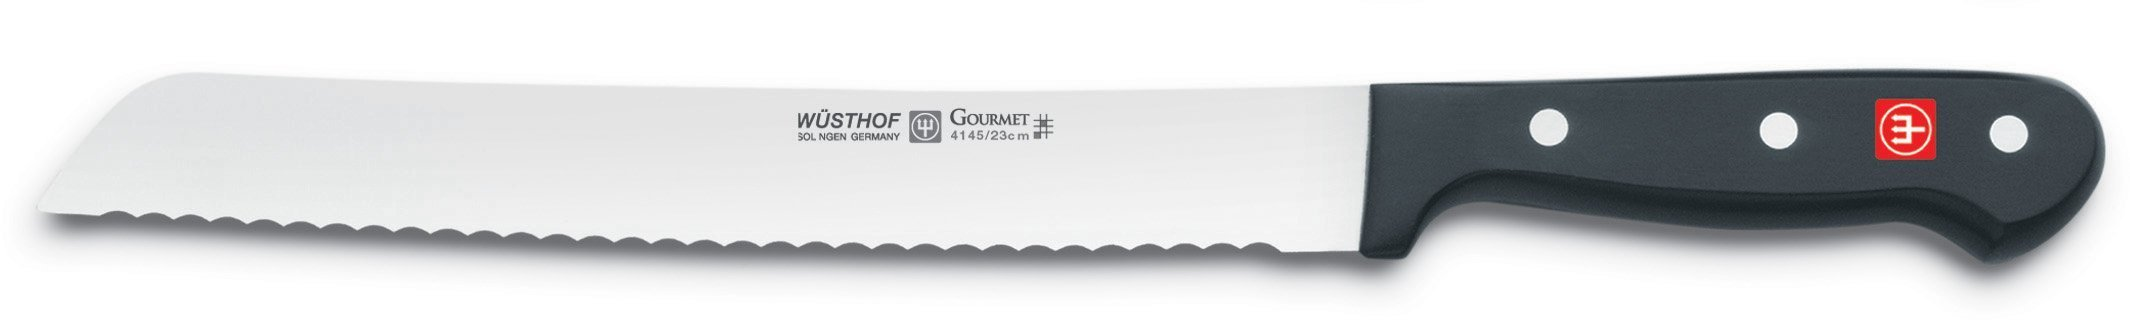 Wusthof Gourmet 9'' Bread Knife